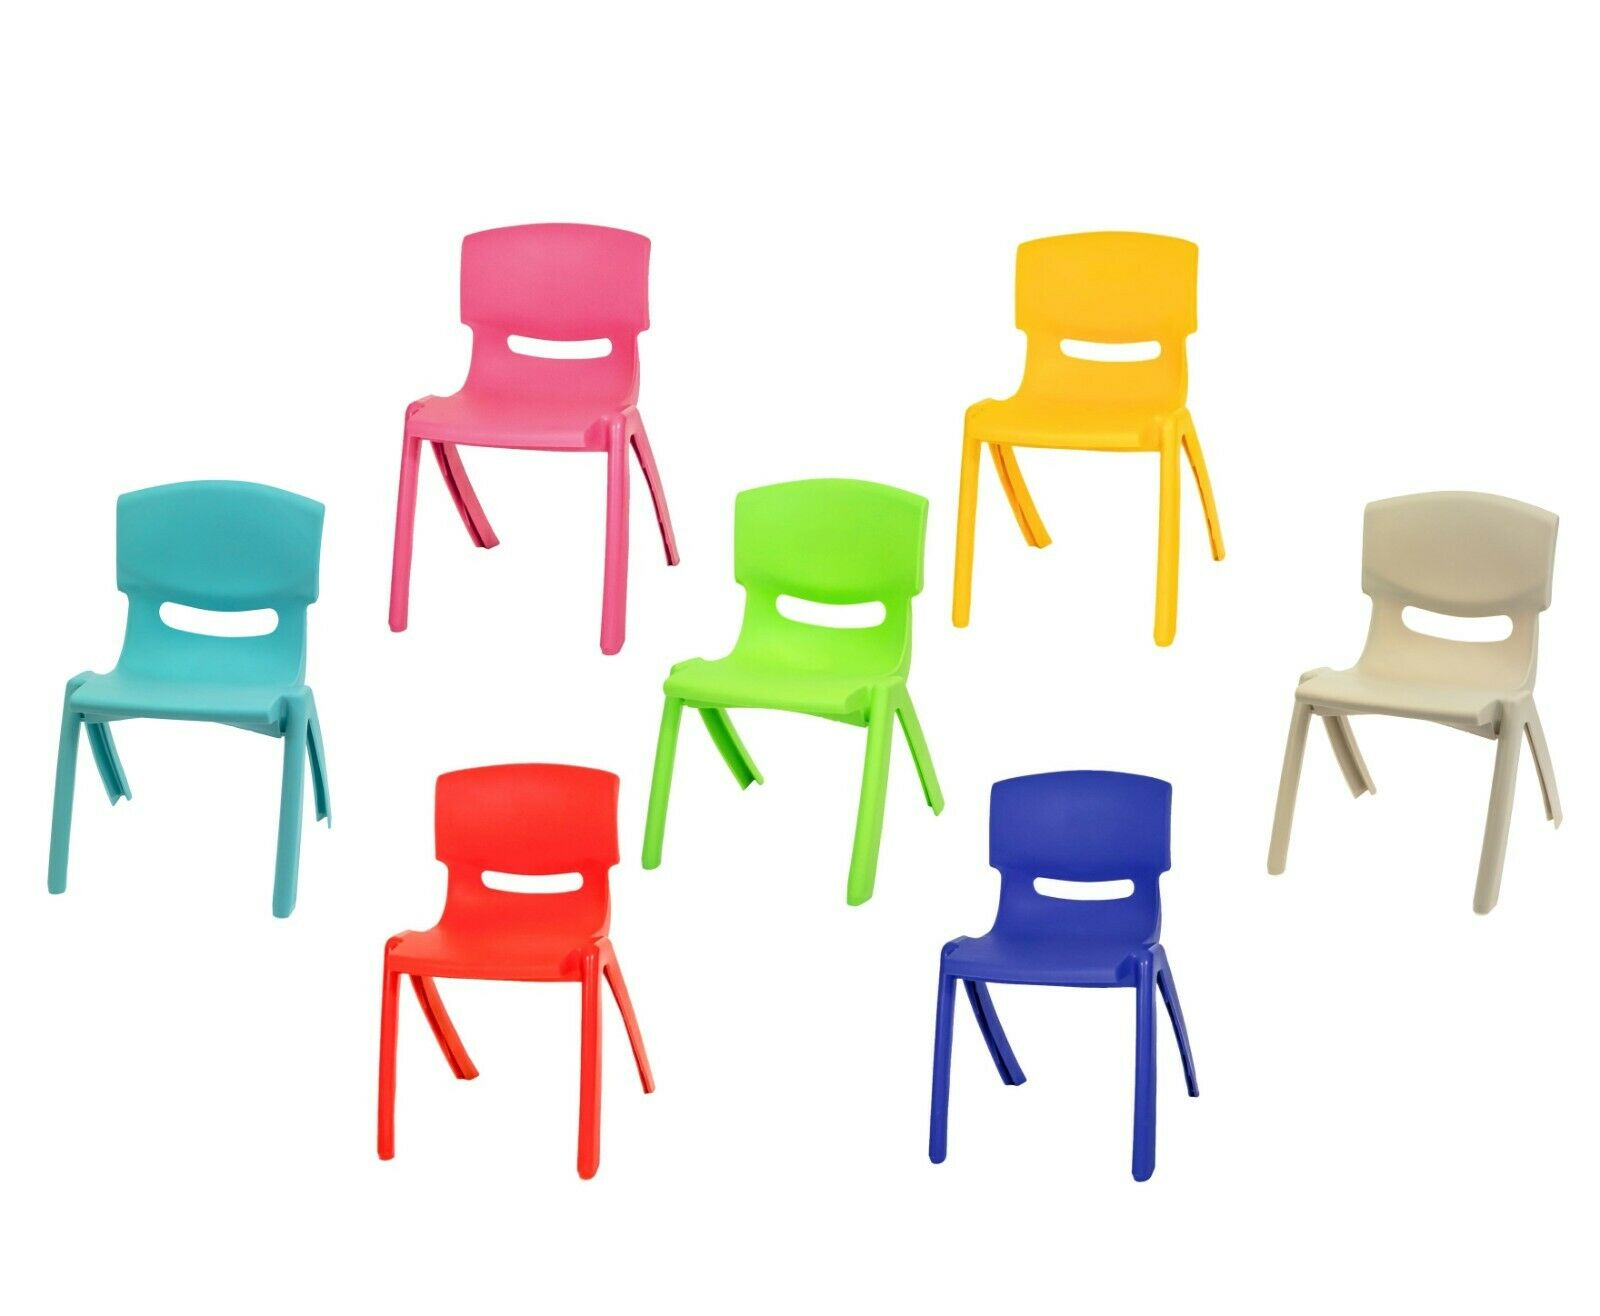 kids stackable chairs lift edmonton ab children plastic chair home picnic party up